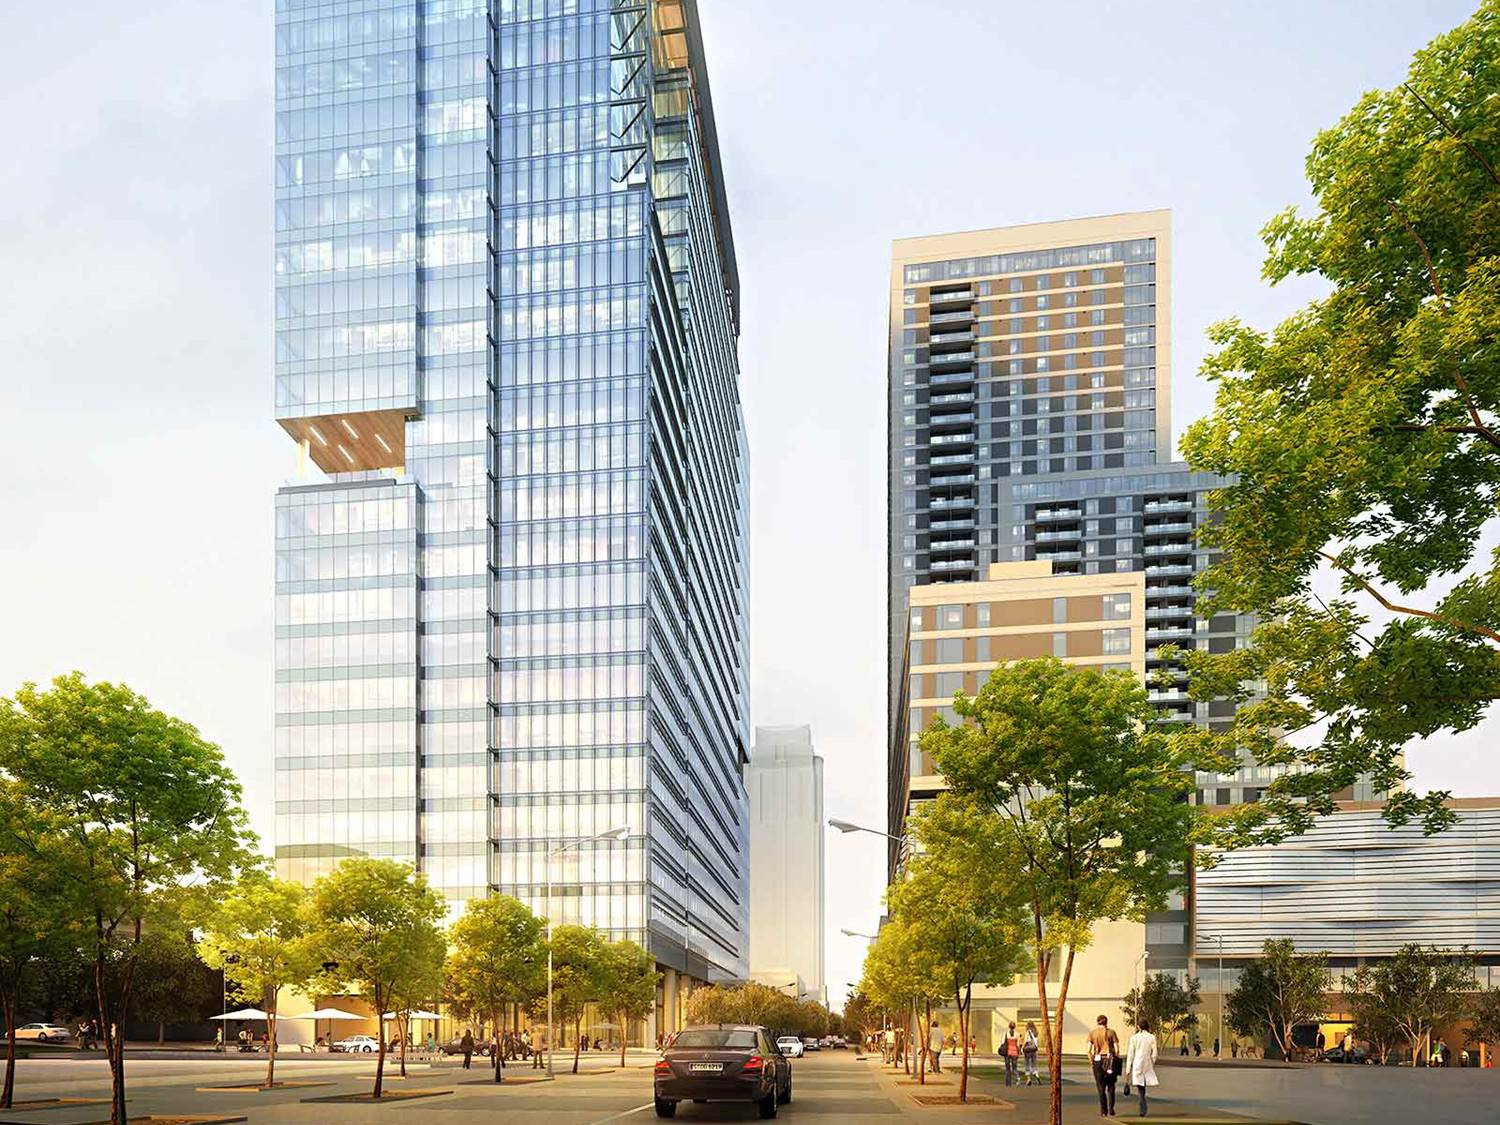 Image Credit: Green Water : Block 23 Office Tower via Trammell Crow Company